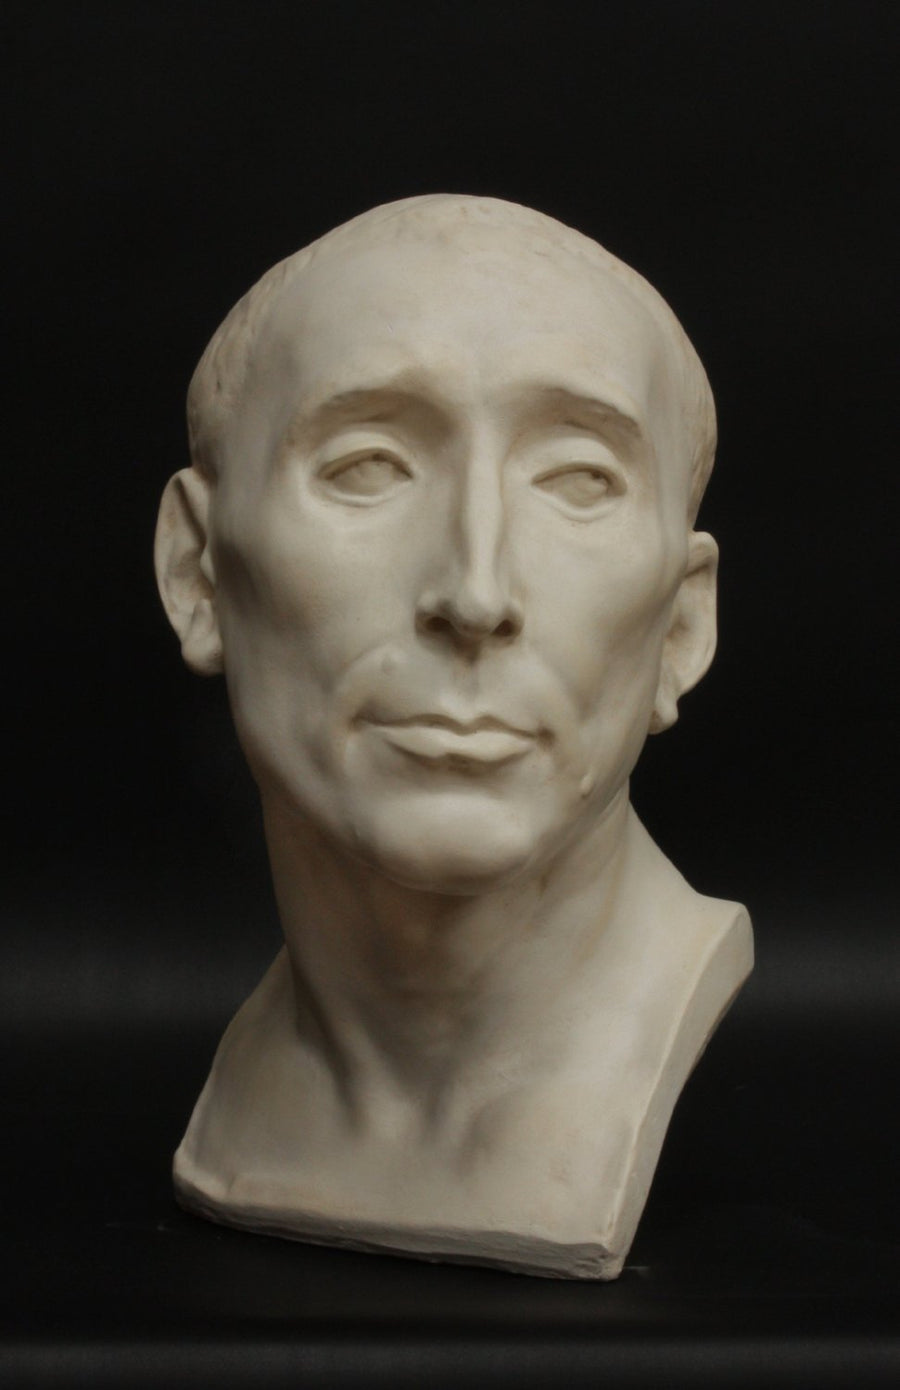 photo with black background of plaster cast sculpture bust of man, namely Niccolo da Uzzano